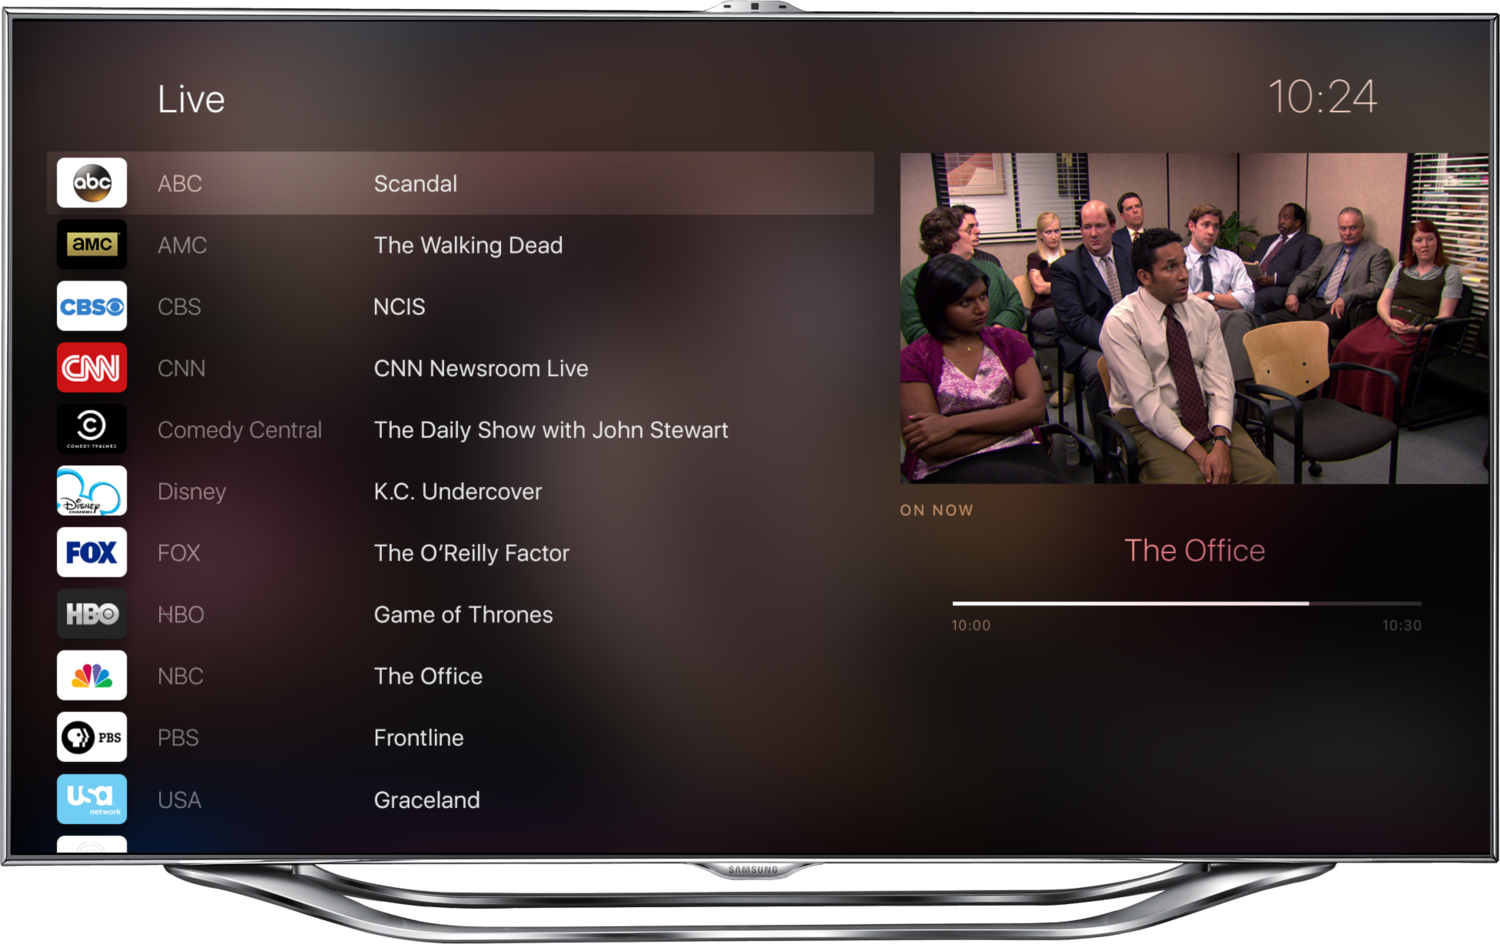 Apple TV 4 UI With Third-Party Apps, Siri, New UI Conceptualized